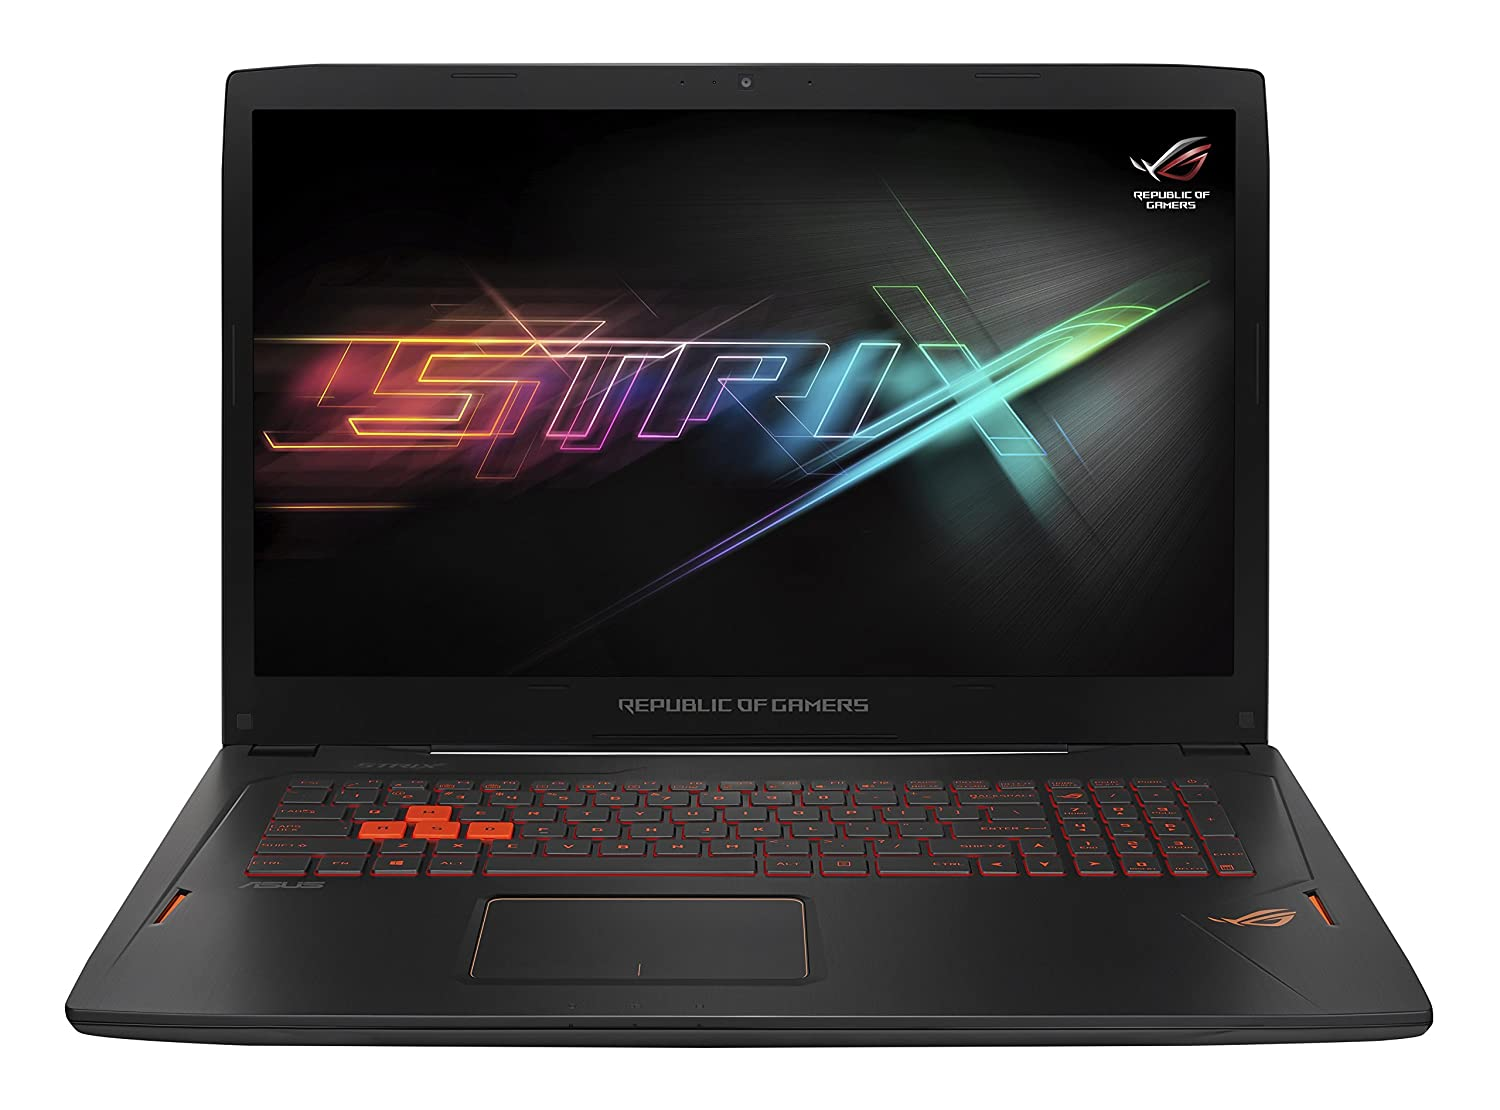 Best Gaming Laptops 2020.Top 10 Best Gaming Laptops Under 1000 Dollars For 2019 2020